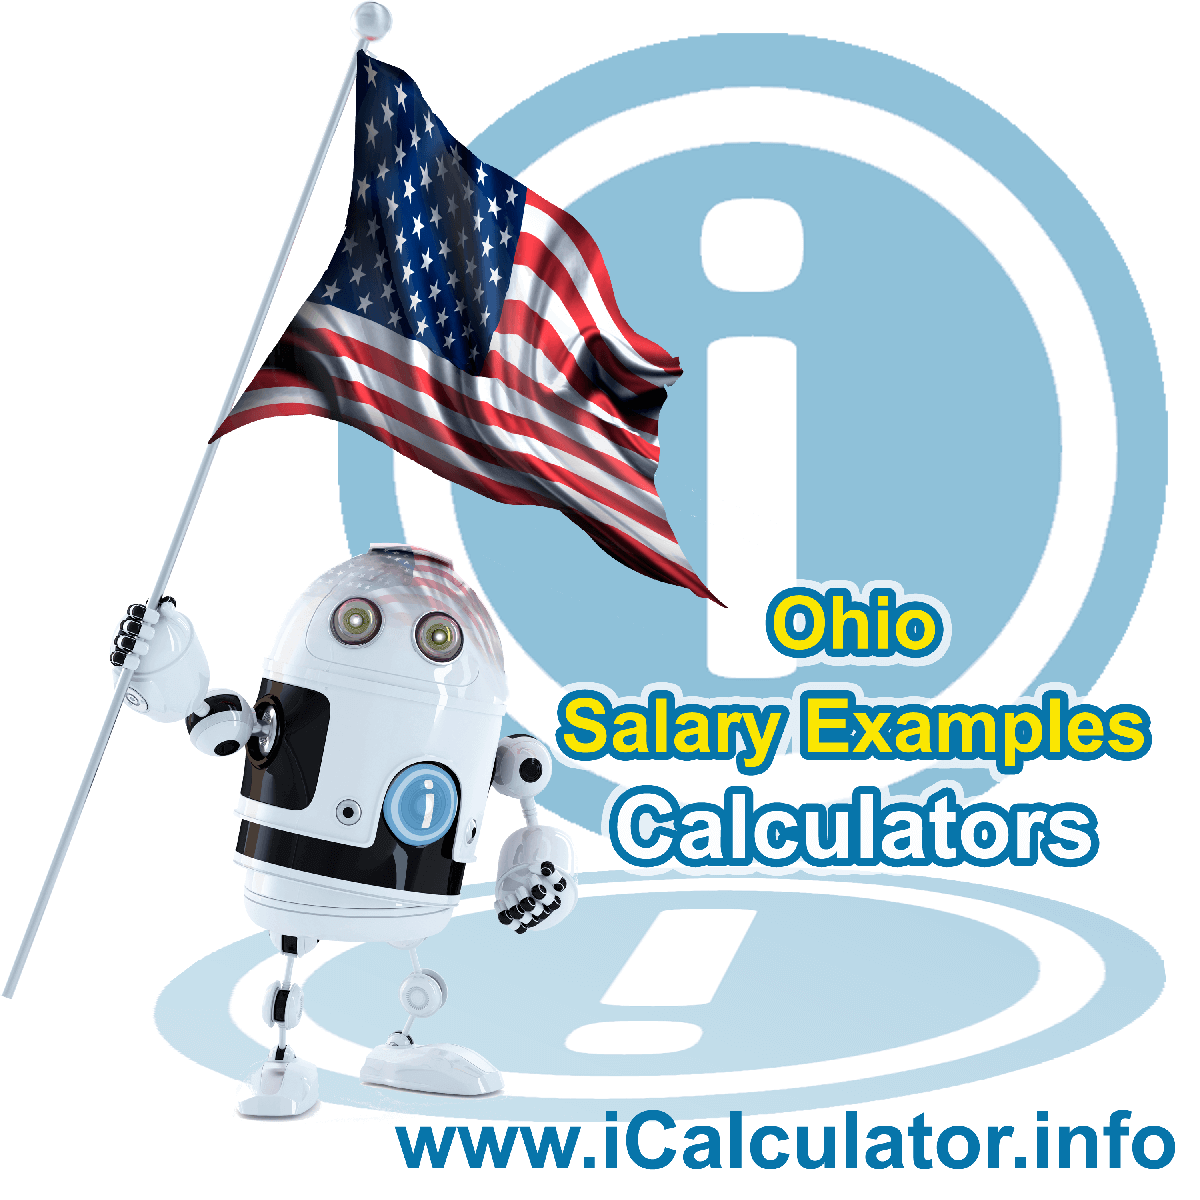 Ohio Salary Example for $50.00 in 2020 | iCalculator | $50.00 salary example for employee and employer paying Ohio State tincome taxes. Detailed salary after tax calculation including Ohio State Tax, Federal State Tax, Medicare Deductions, Social Security, Capital Gains and other income tax and salary deductions complete with supporting Ohio state tax tables